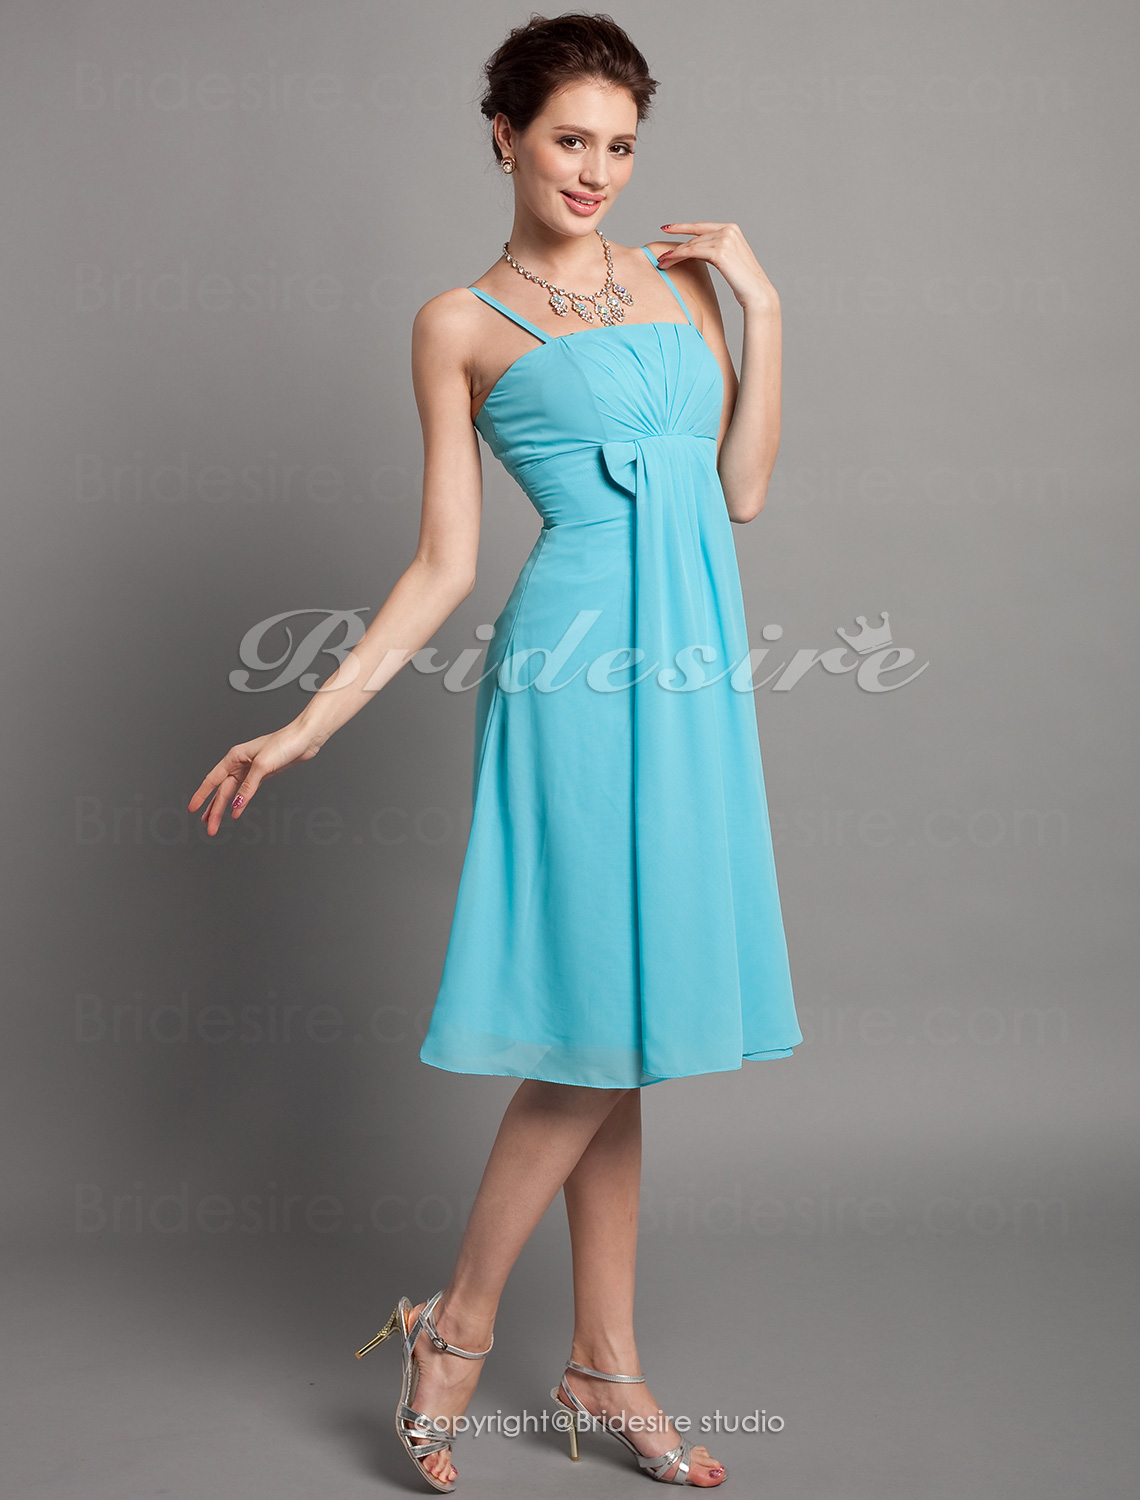 Sheath/ Column Chiffon Spaghetti Straps Knee-length Empire Bridesmaid Dress